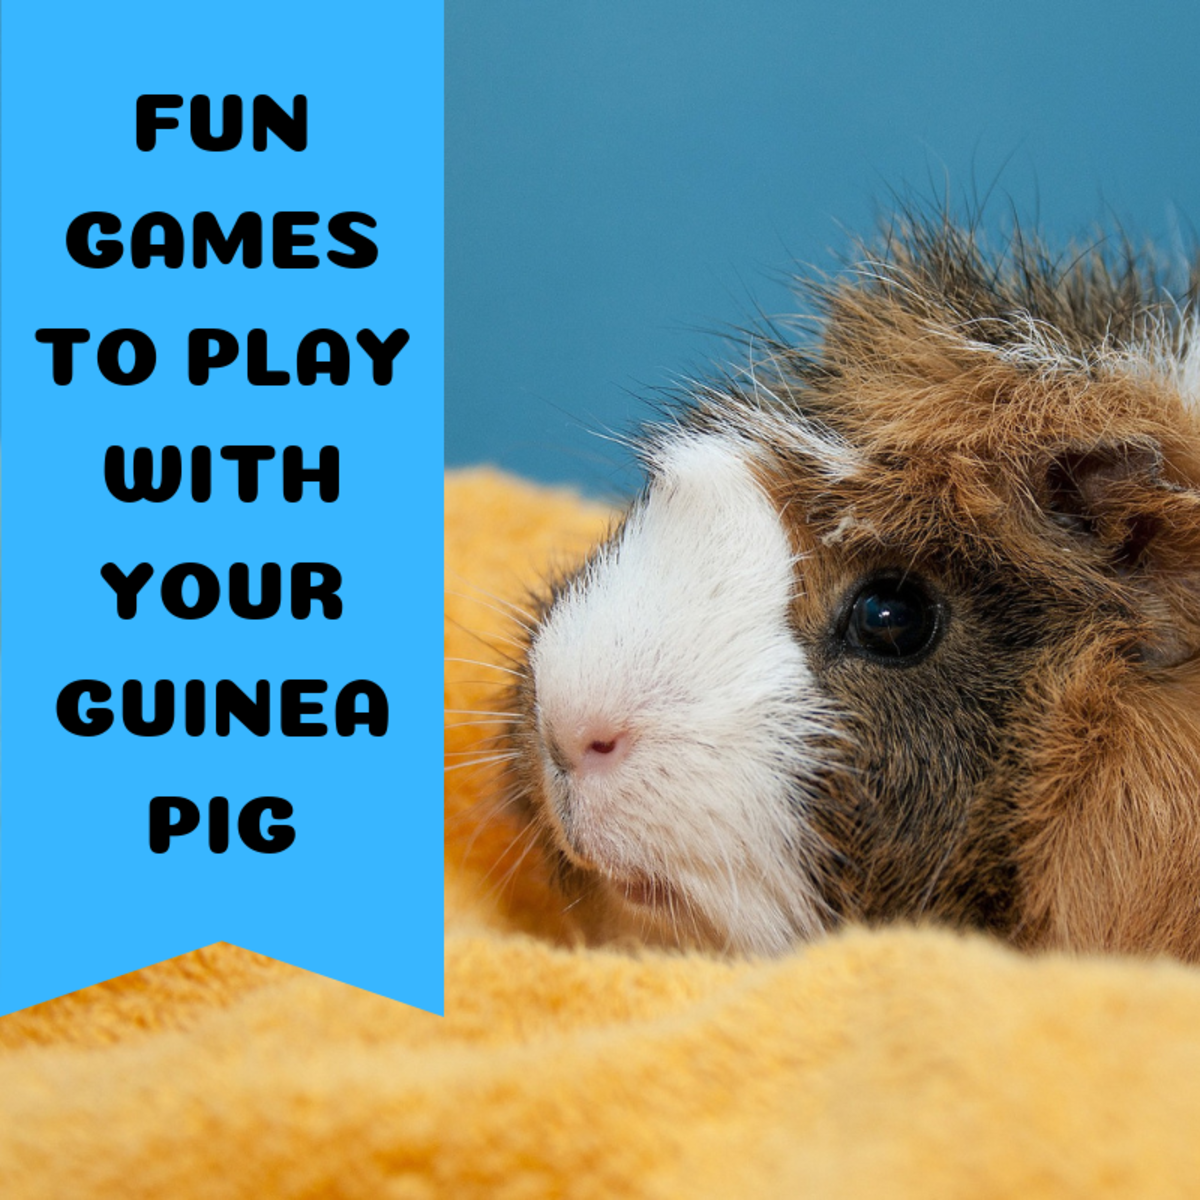 Guinea pigs love to play games in a calm atmosphere.